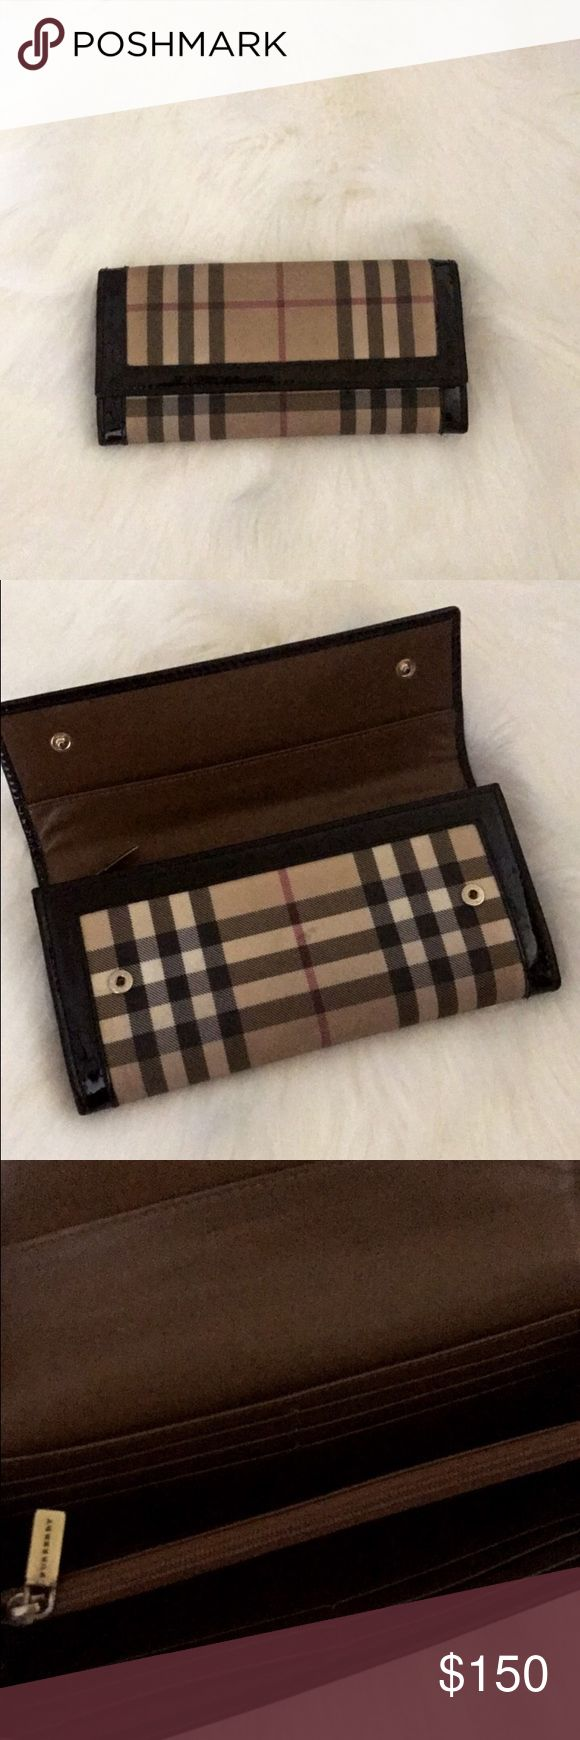 Burberry wallet Used Burberry wallet. Dirty but will clean prior to shopping. 16 card slots with a cash slide and coin purse. Burberry Bags Wallets